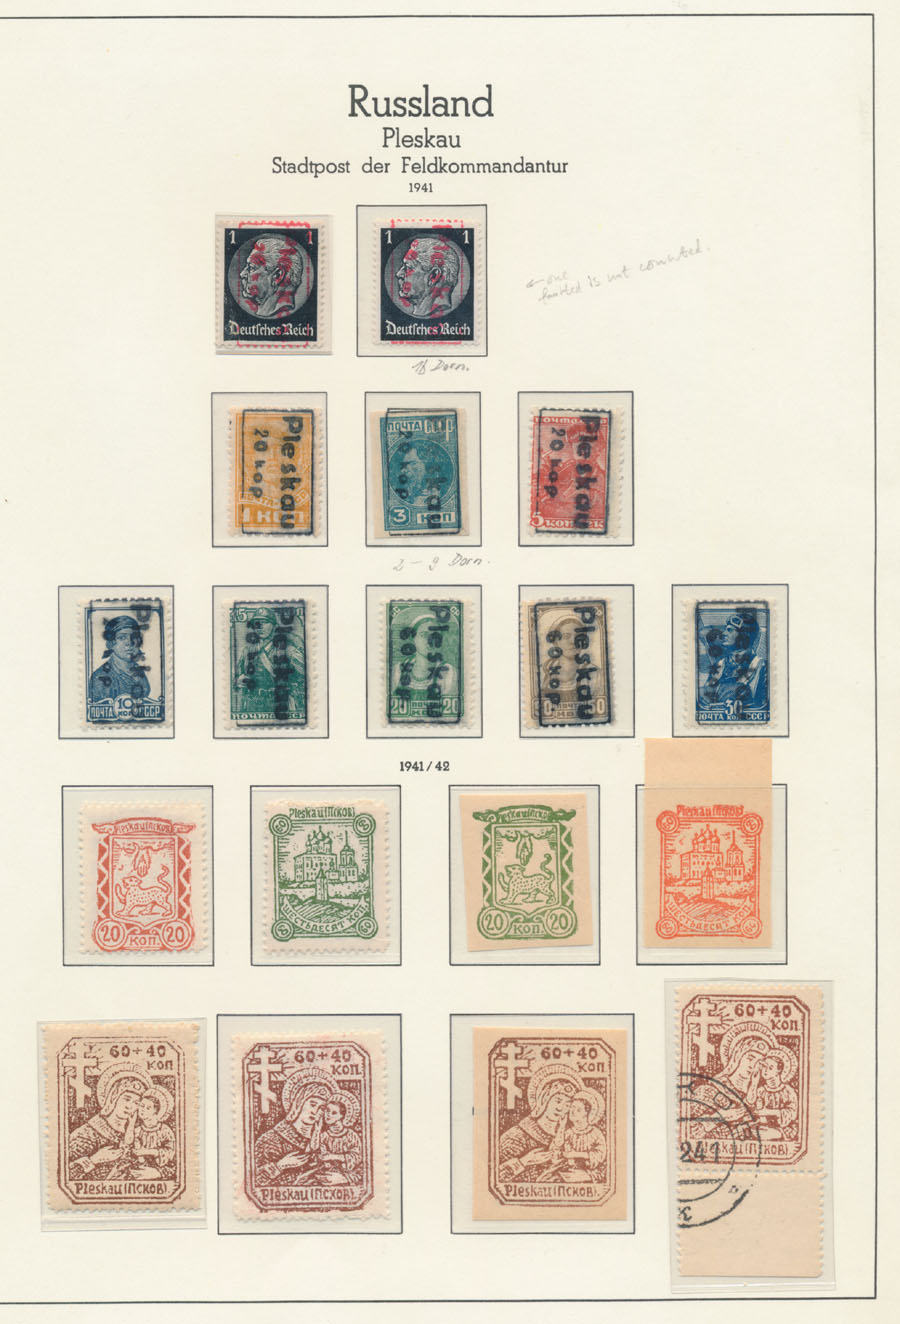 Lot 334 - Germany. Occupation issues During the World War II russland (russia) - pleskau (pskov) -  Raritan Stamps Inc. Stamp Auction #73